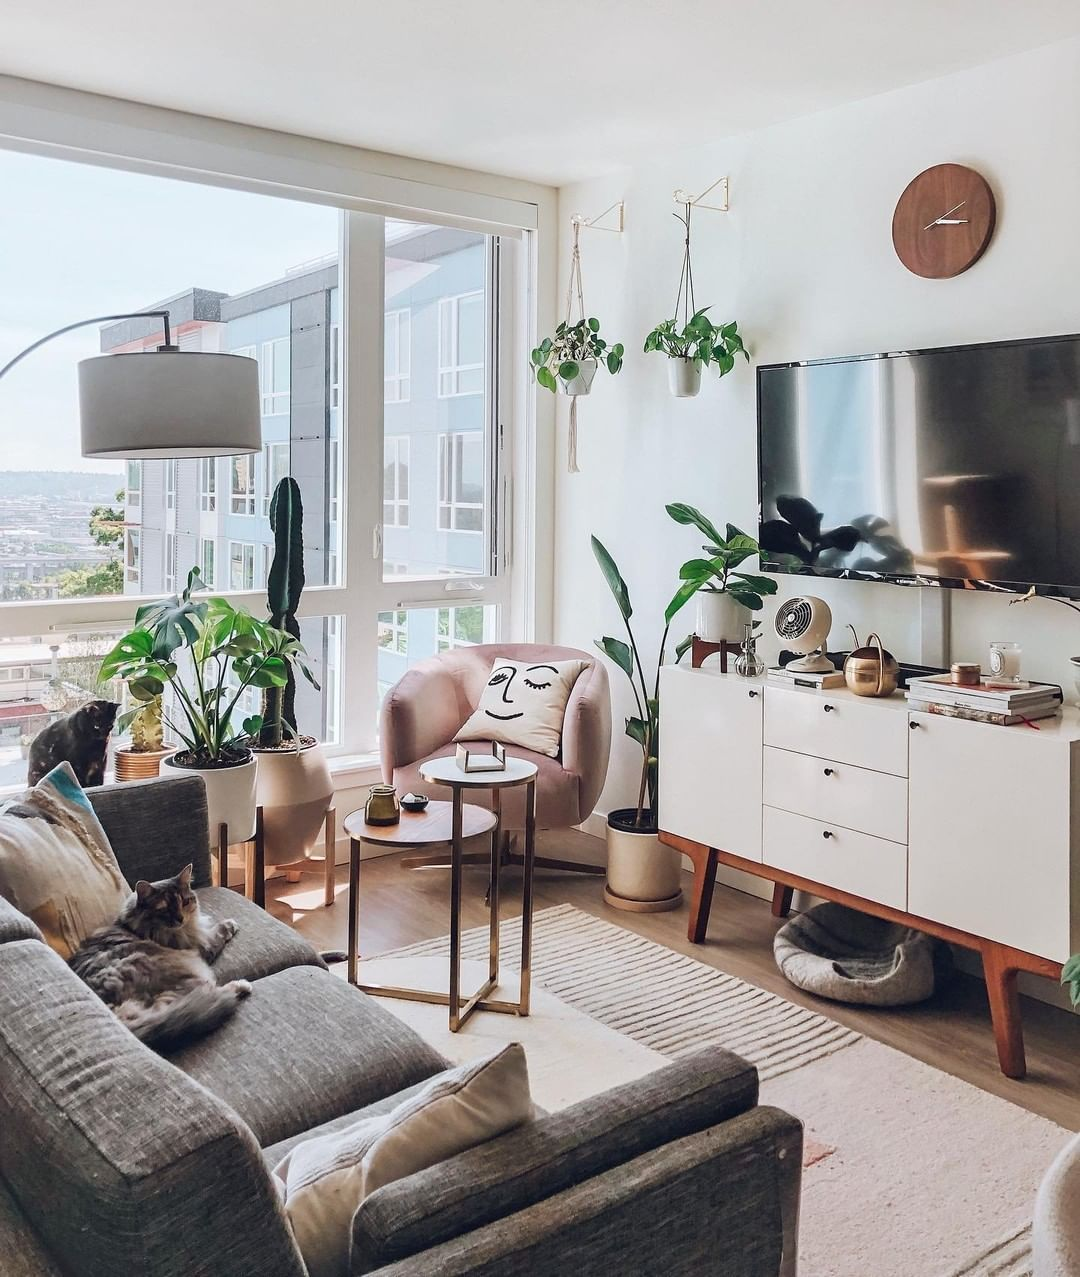 Apartment Therapy On Instagram Wishing We Could Hang Out In This Apartment All Day With Th Small Apartment Living Room Small Apartment Living Apartment Room